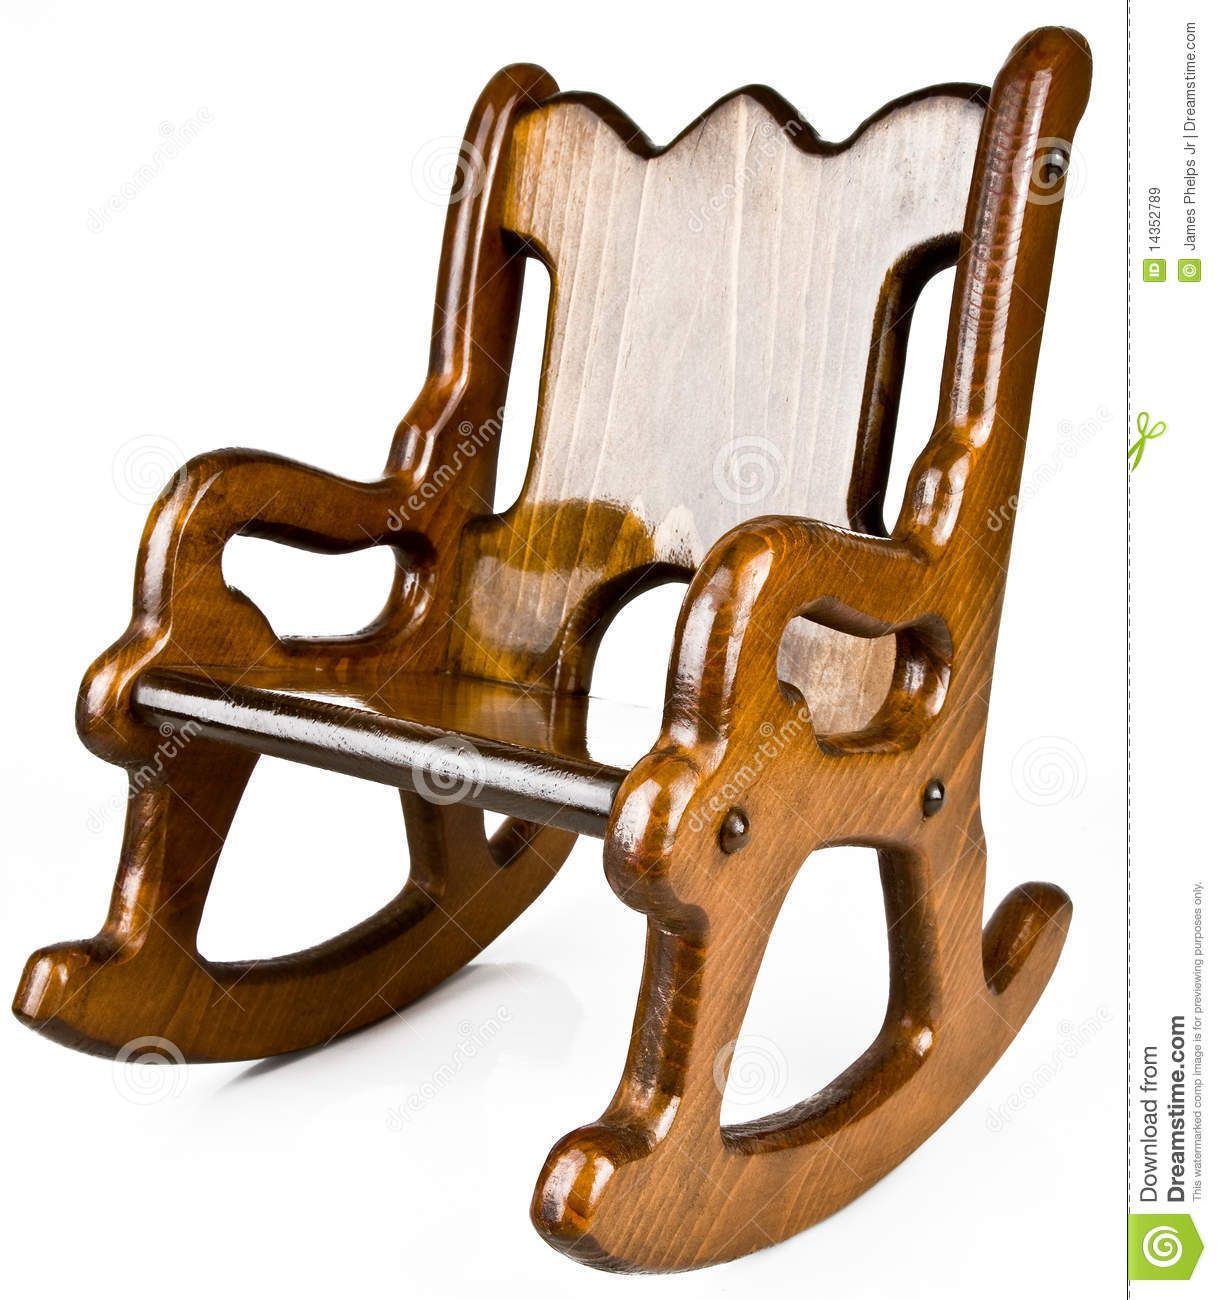 kids wood rocking chair plans | wood | Pinterest | Rocking ...